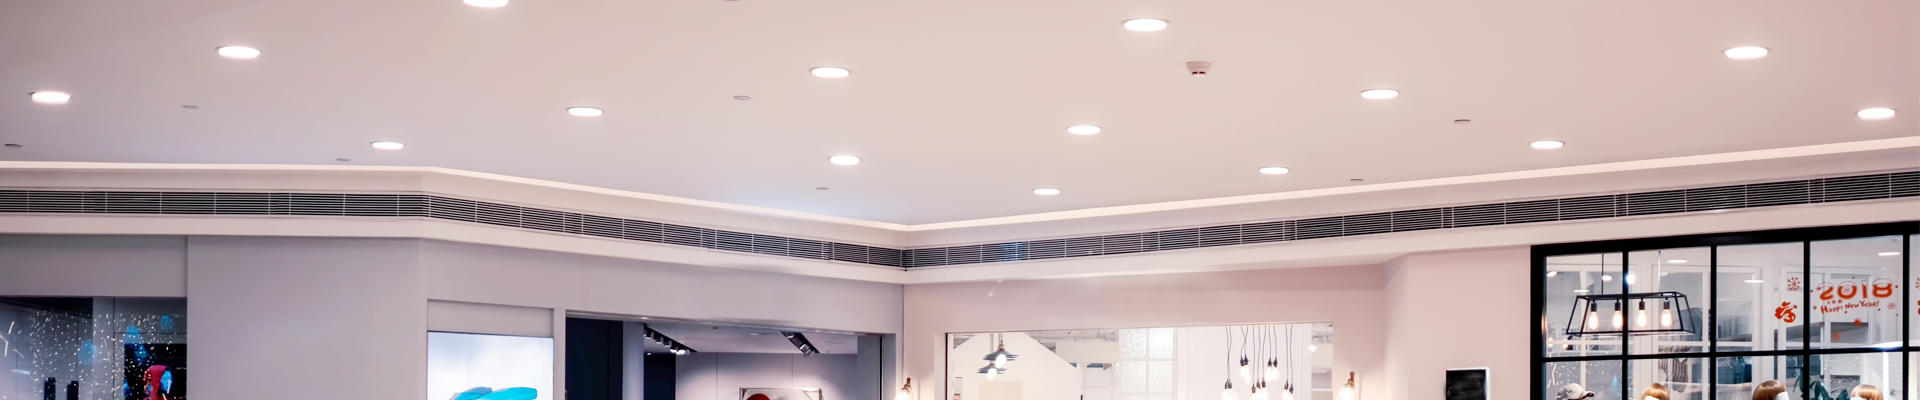 commercial led downlight